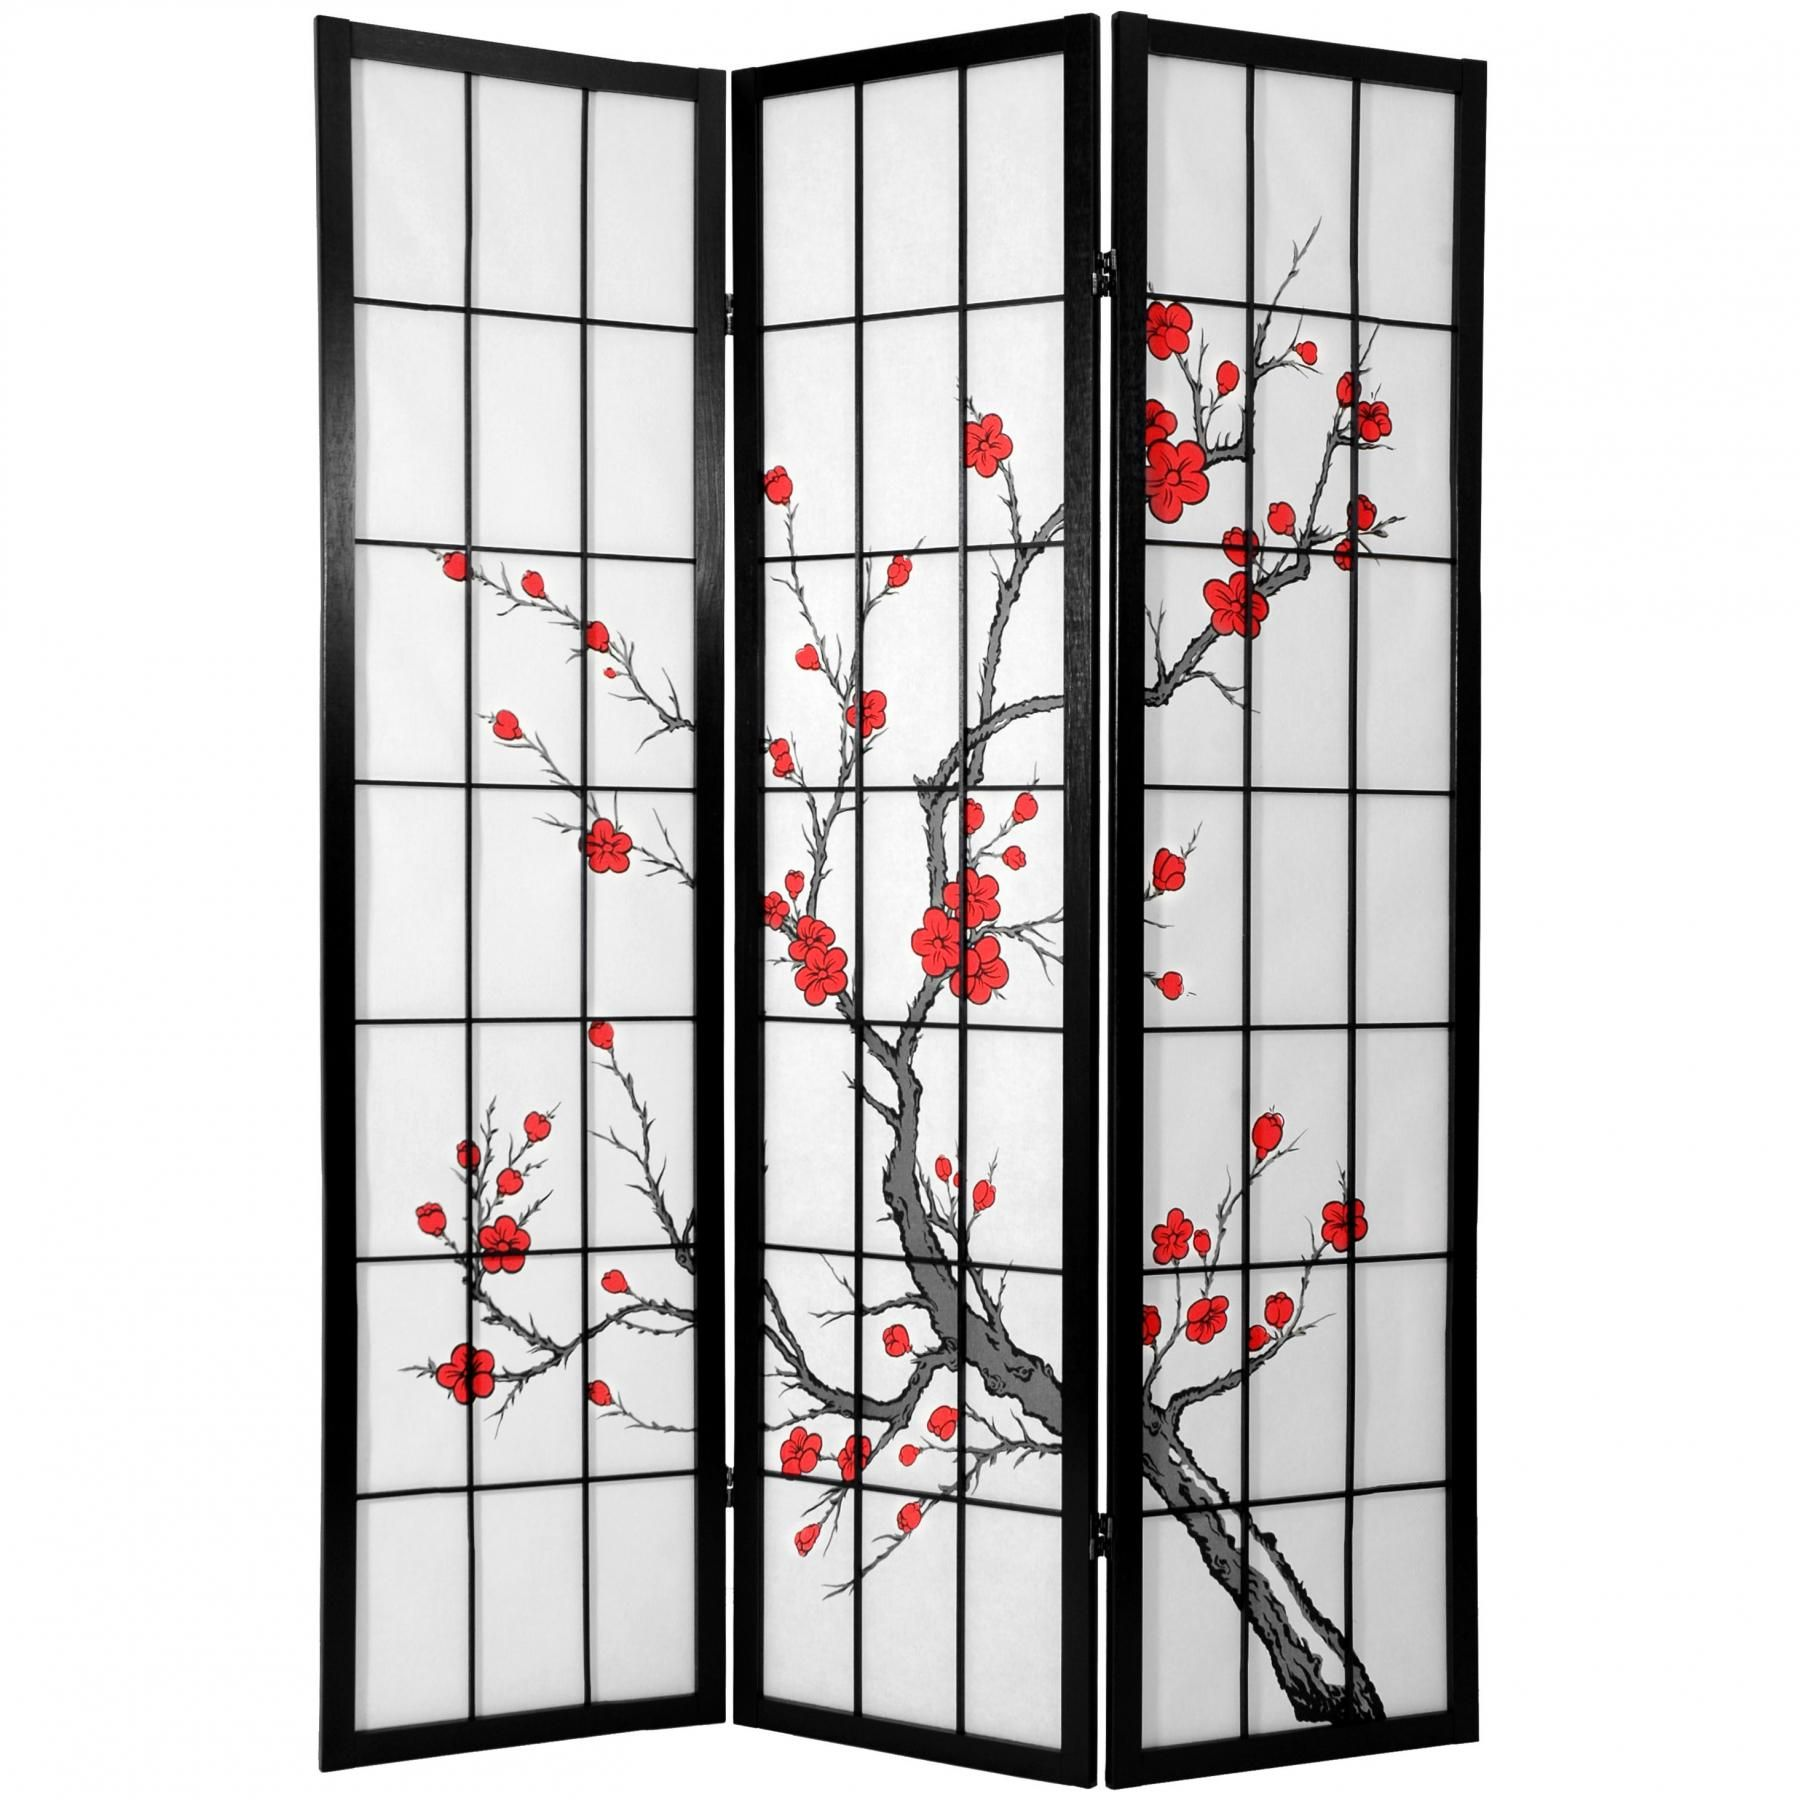 If You Want To Get One Of The Asian Room Dividers And Have Some - Cherry blossom room divider screen